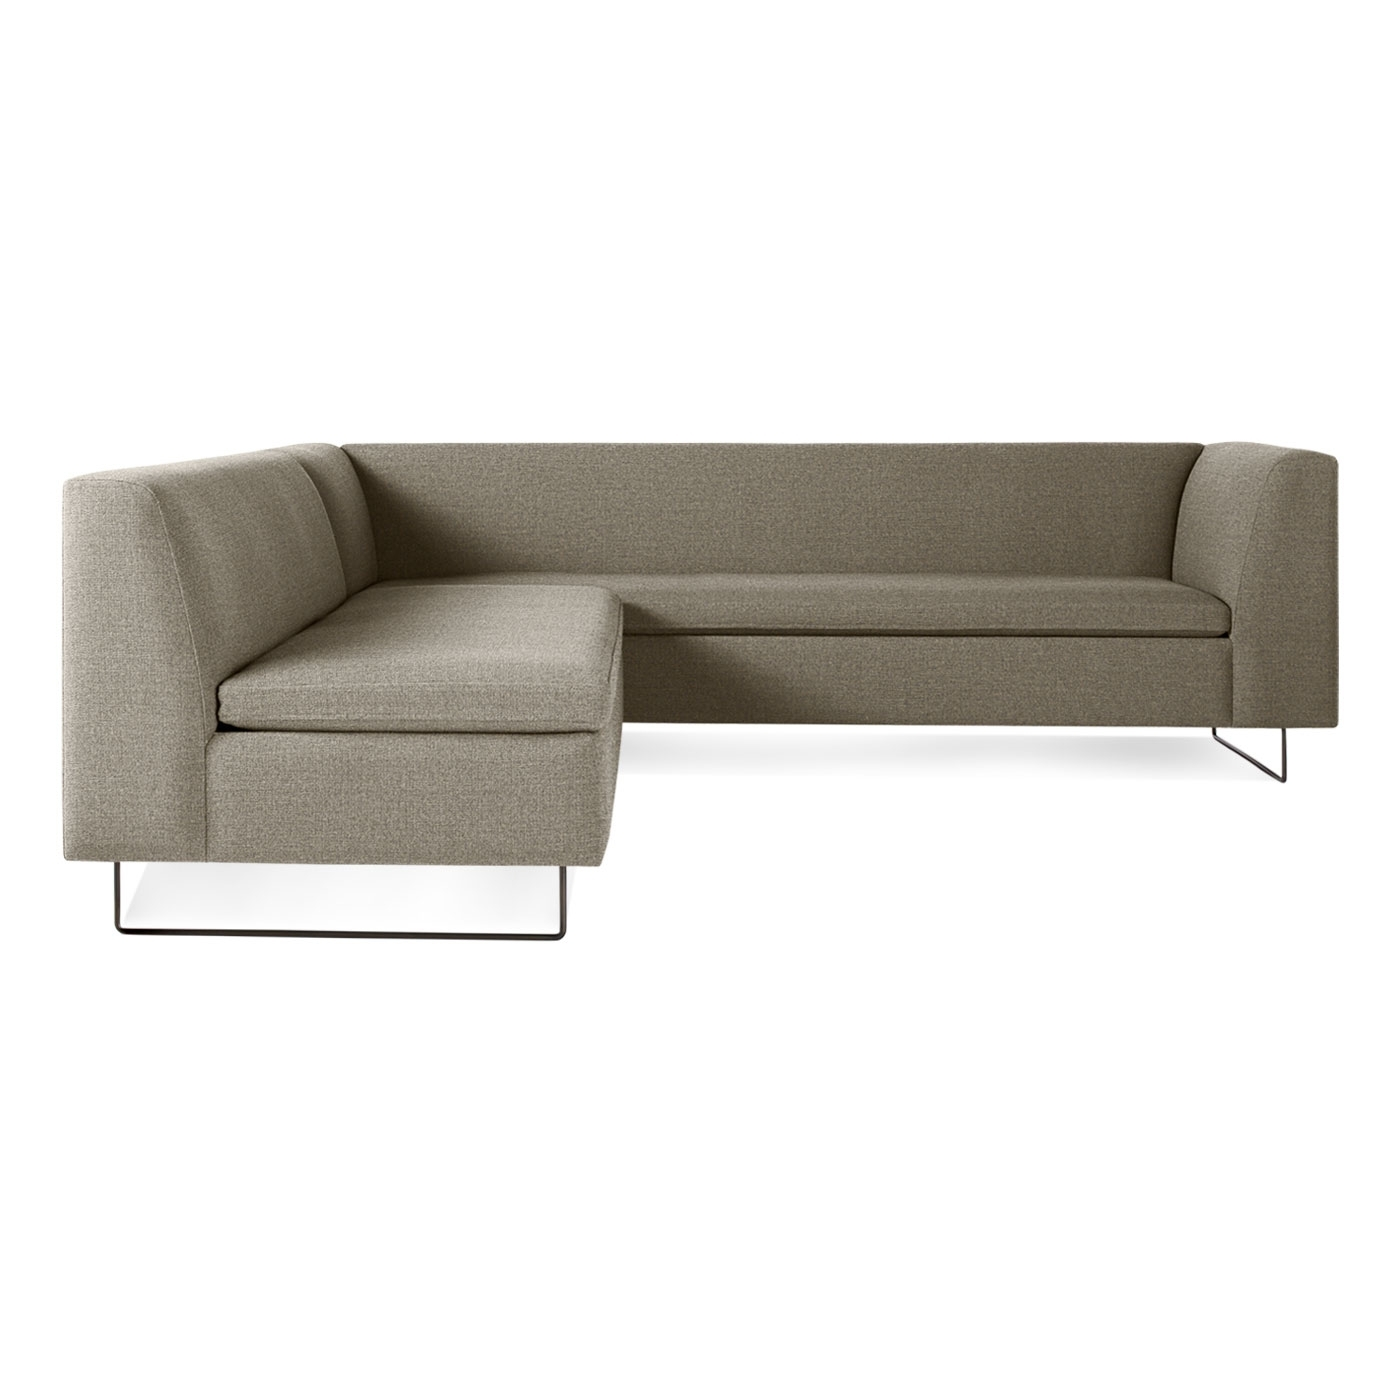 Ontario Sectional Sofas Within Well Liked Bonnie & Clyde Modular Fabric Sectional Sofa (View 15 of 20)